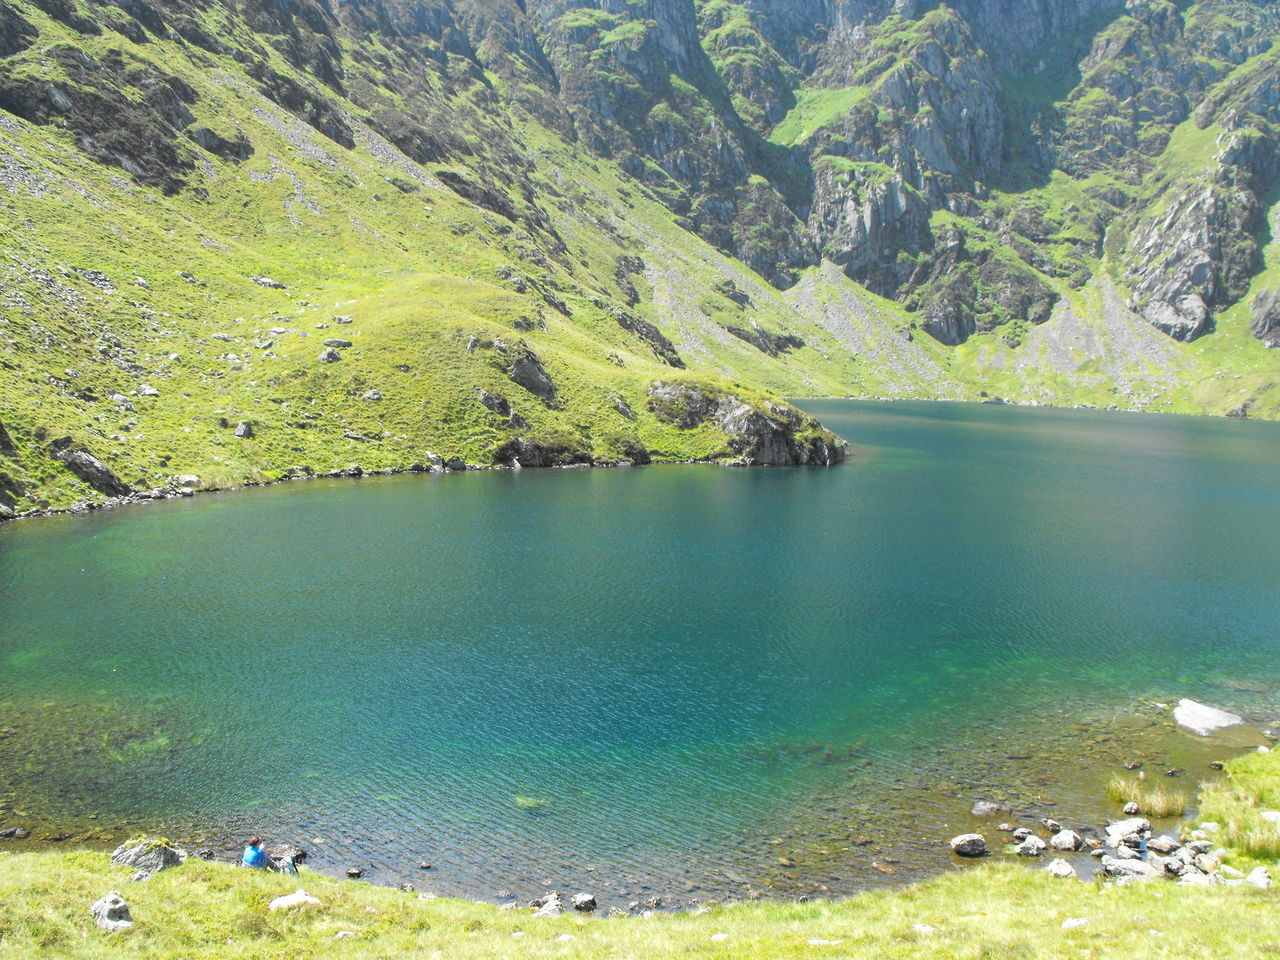 Mountain Lake in the Spring, North Wales Adventure Beauty In Nature Blue Blue Green  Cadair Idris Cader Idris Clear Lake  Day Exploring Green Color Hiking Lake Landscape Landscapes Mountains Nature Outdoors Scenics Snowdonia Spring Springtime Tourism Travel Wales Water